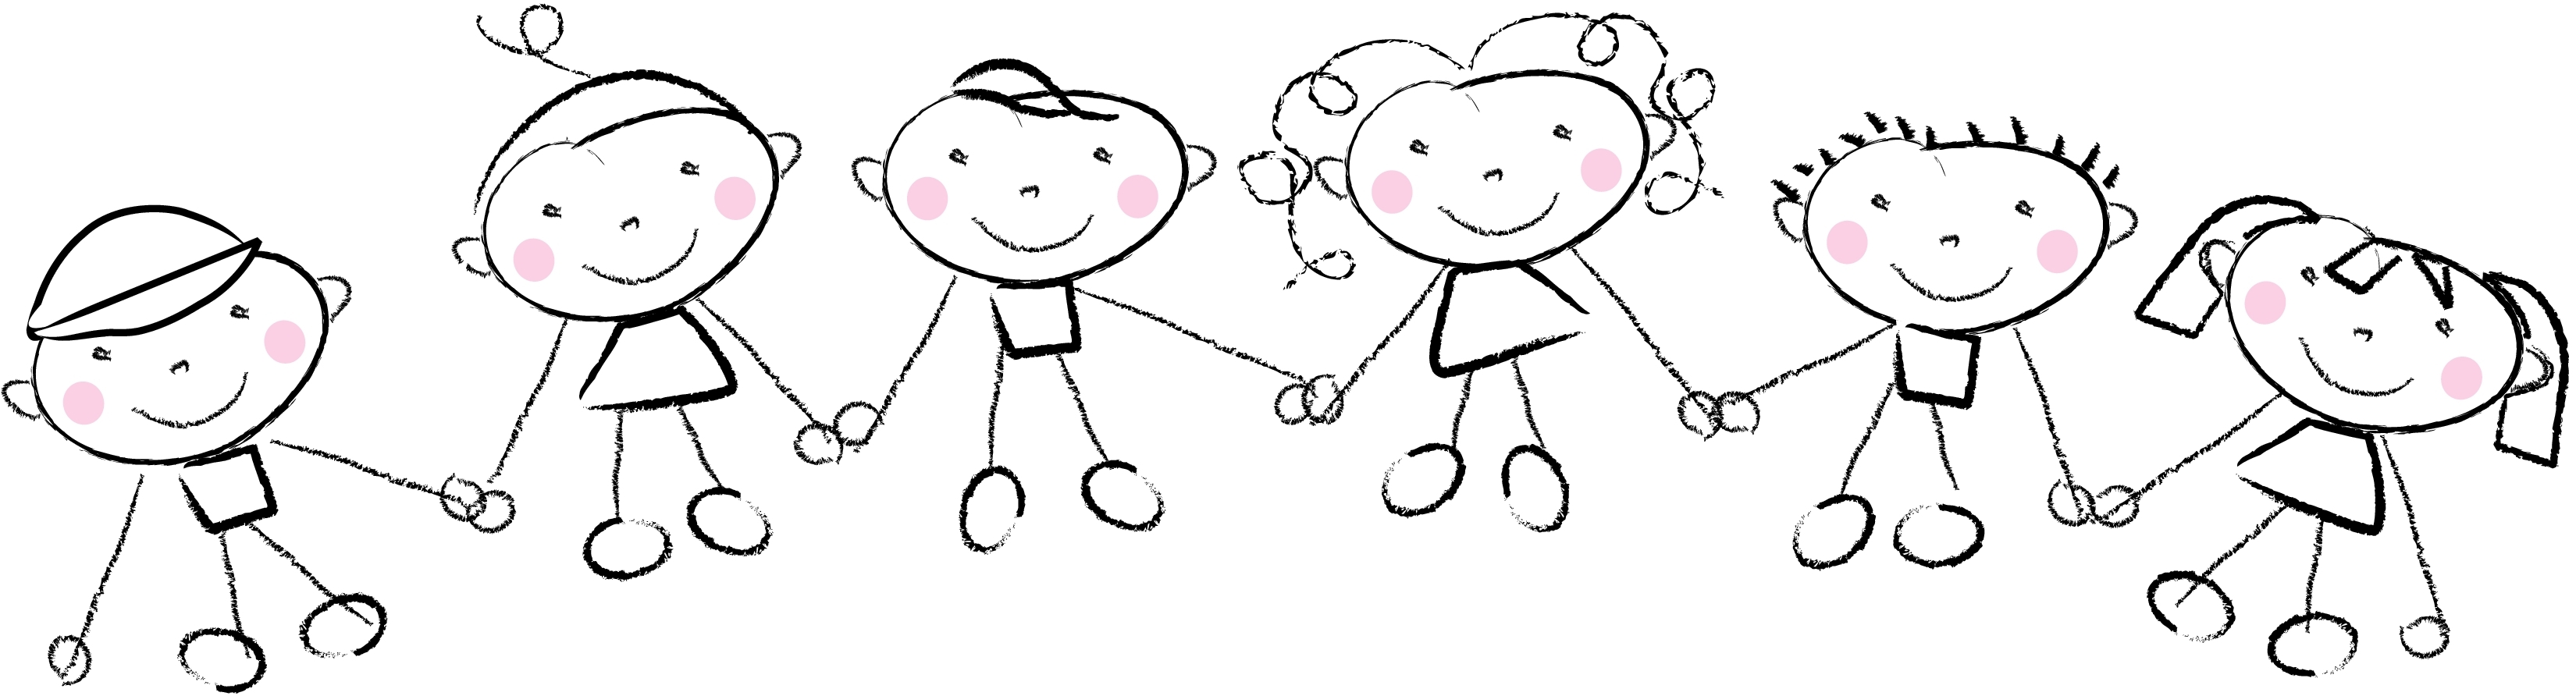 friends holding hands coloring pages - photo#37